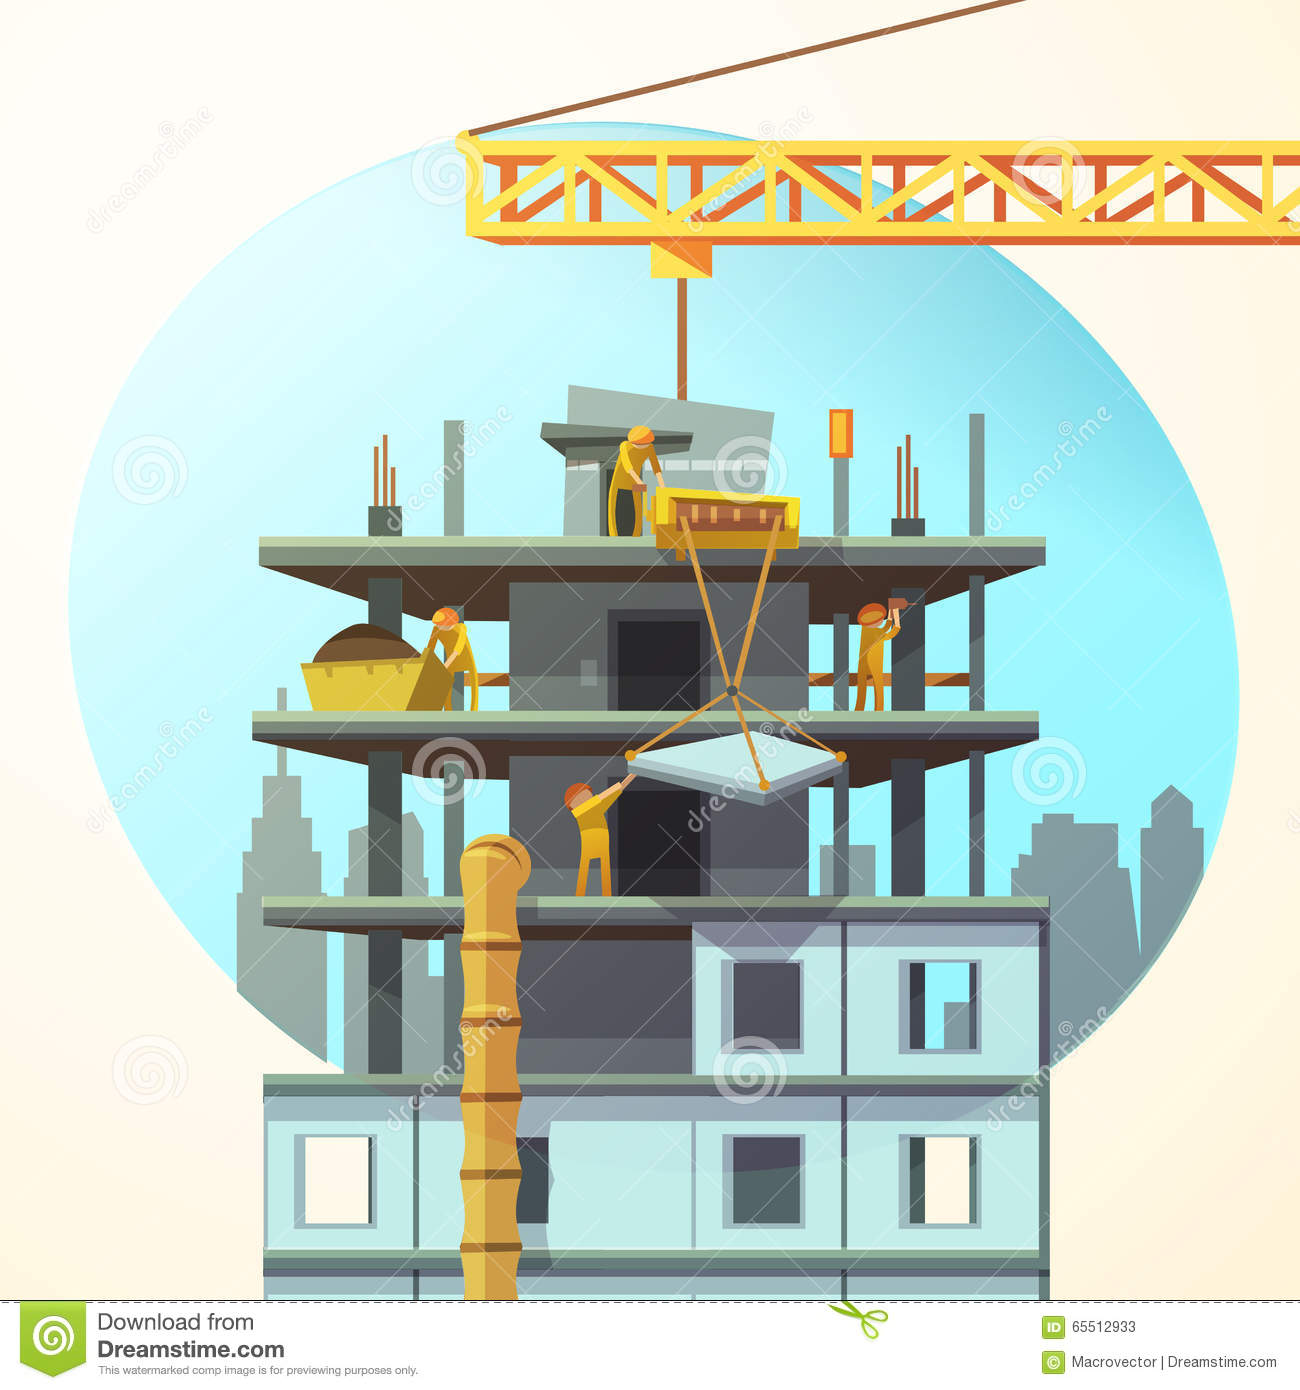 Cartoon construction building images for Home building sites